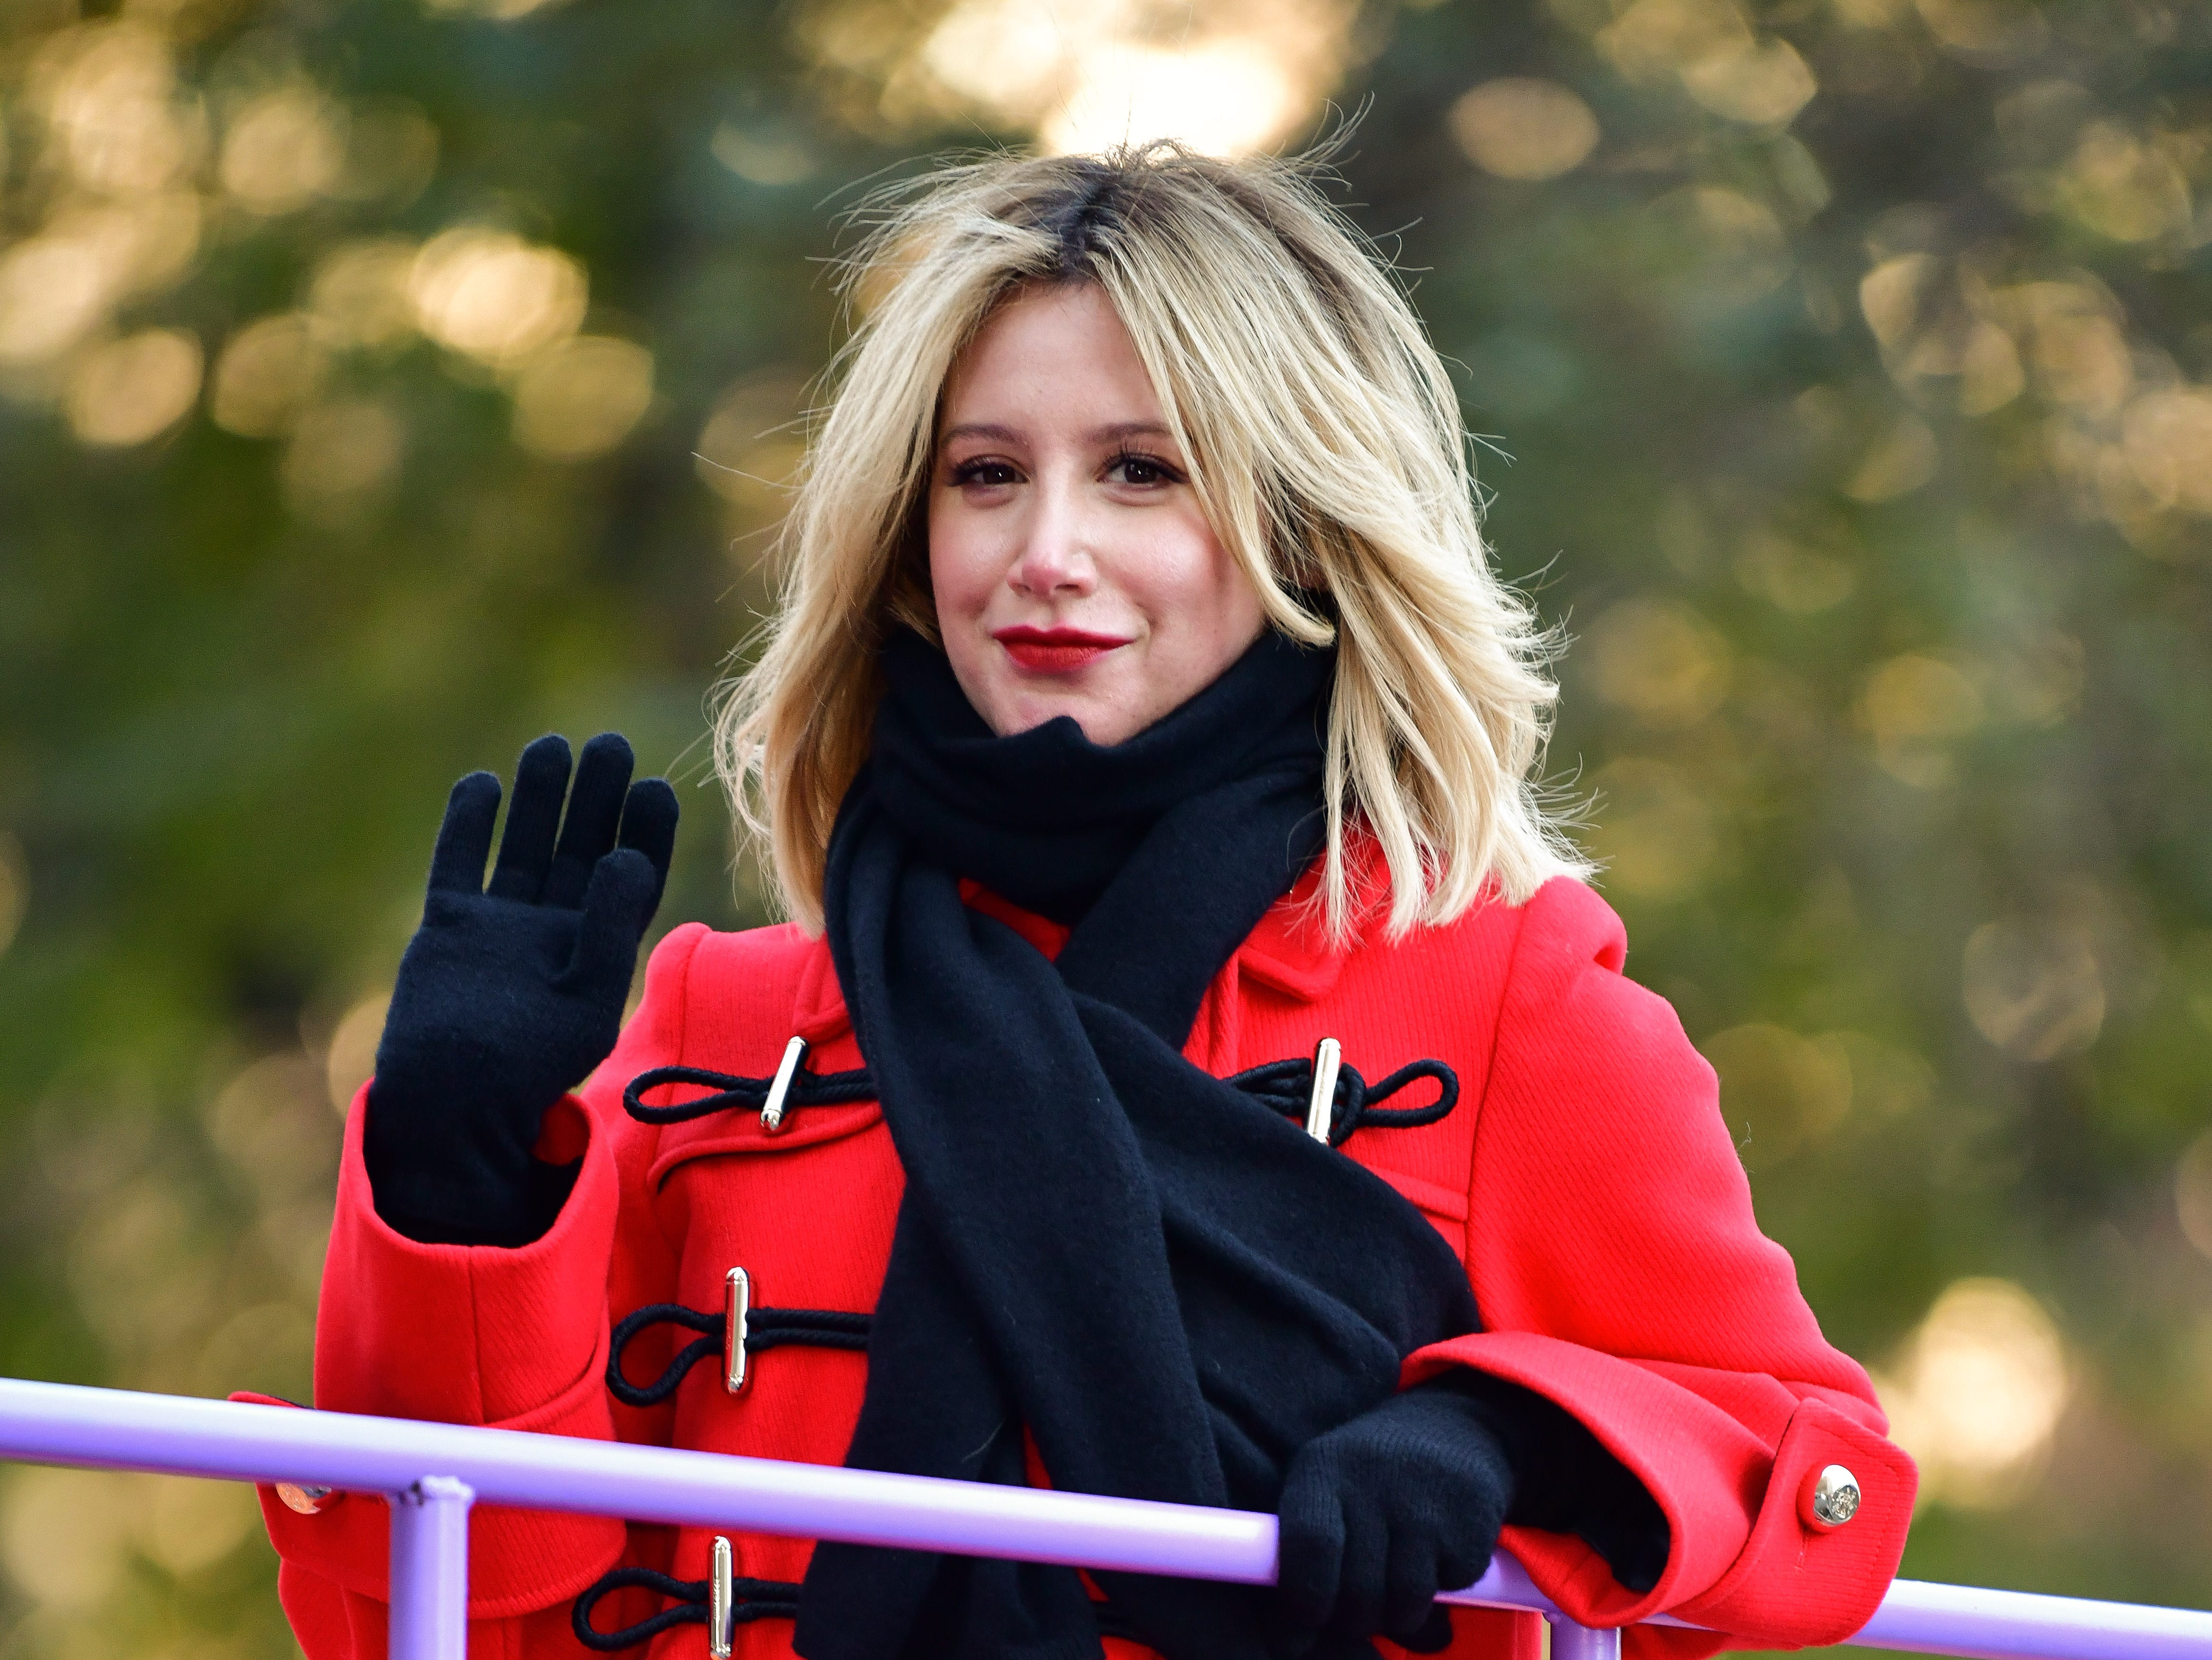 NEW YORK, NY - NOVEMBER 22:  Ashley Tisdale attends the 92nd Annual Macy's Thanksgiving Day Parade on November 22, 2018 in New York City.  (Photo by James Devaney/WireImage,) ORG XMIT: 775240086 ORIG FILE ID: 1064359328